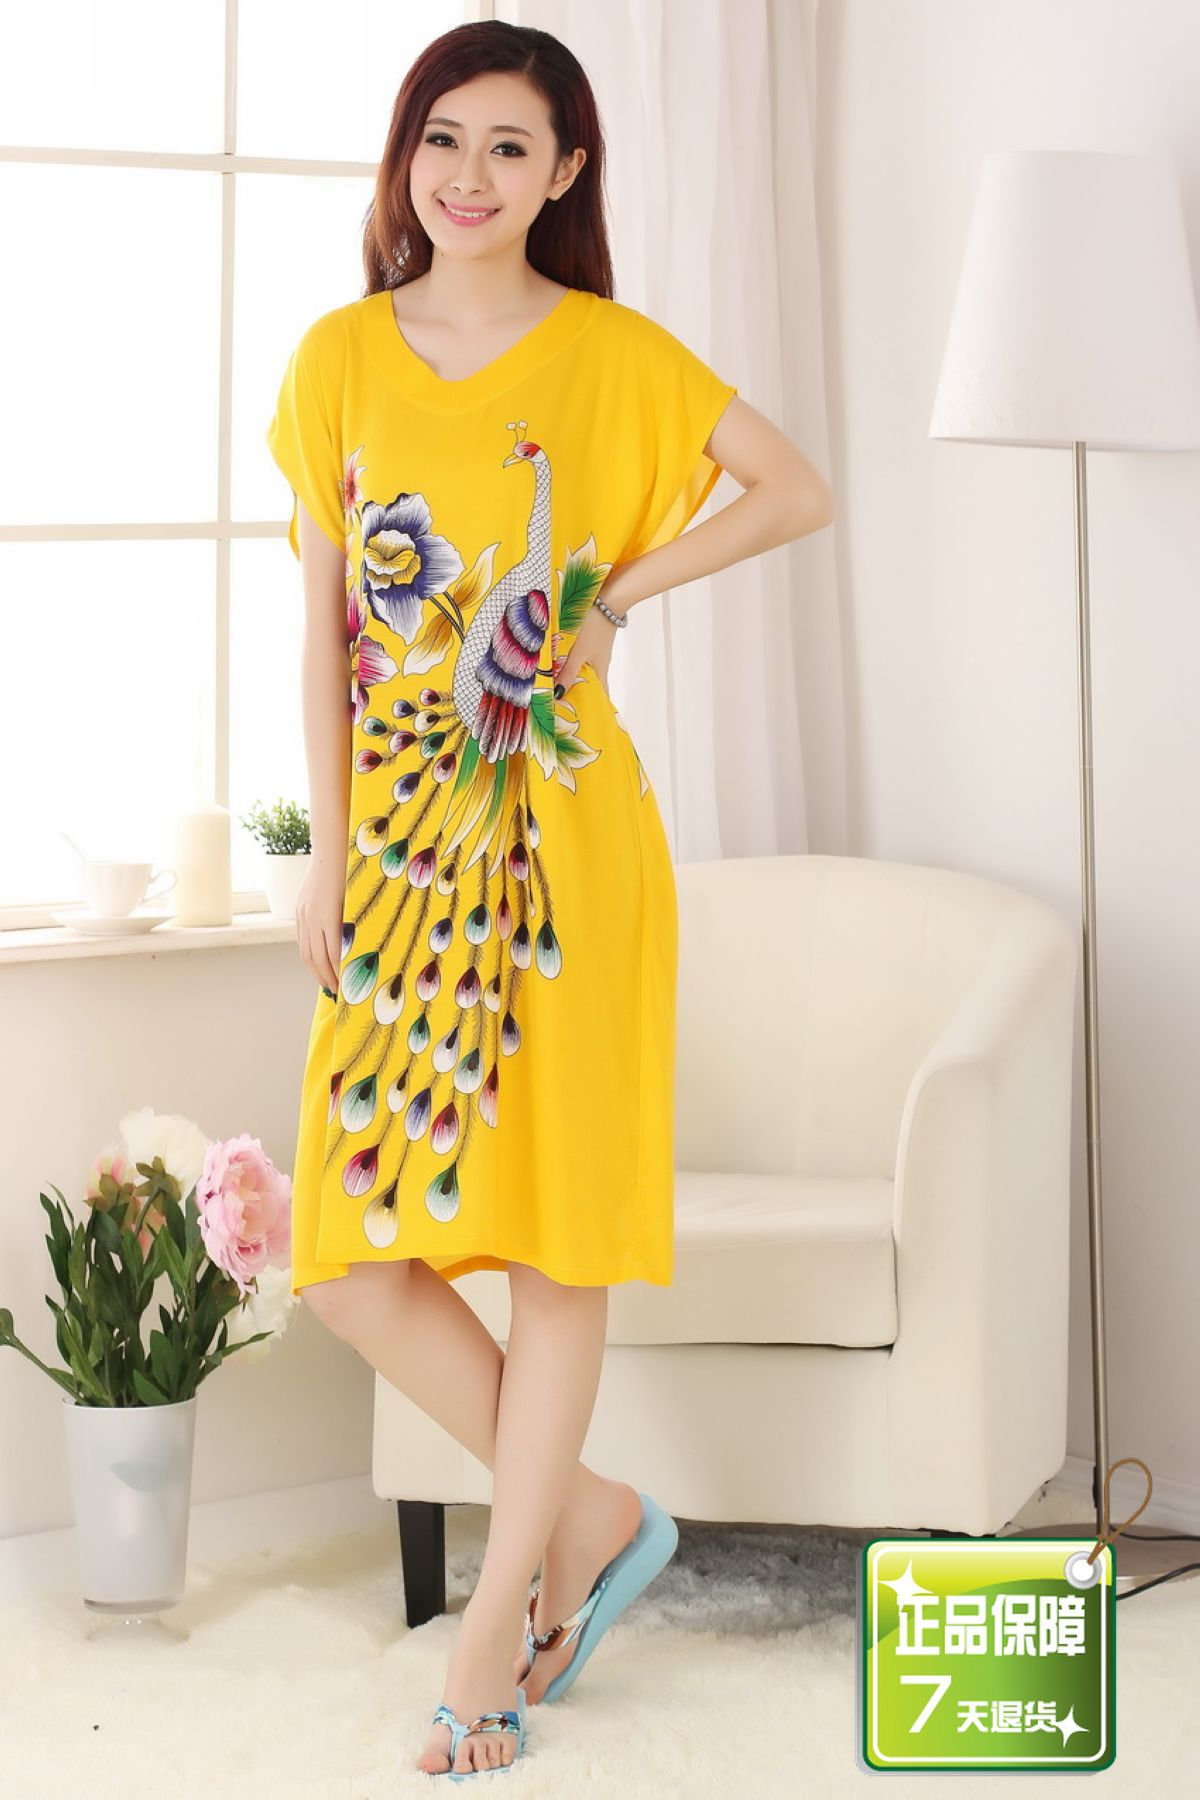 9cd0830a3c Silk spring and autumn female lounge tang suit Loose sleepwear bathrobes  Lady long Night wear night gown Dress pajamas for women-in Robes from  Underwear ...